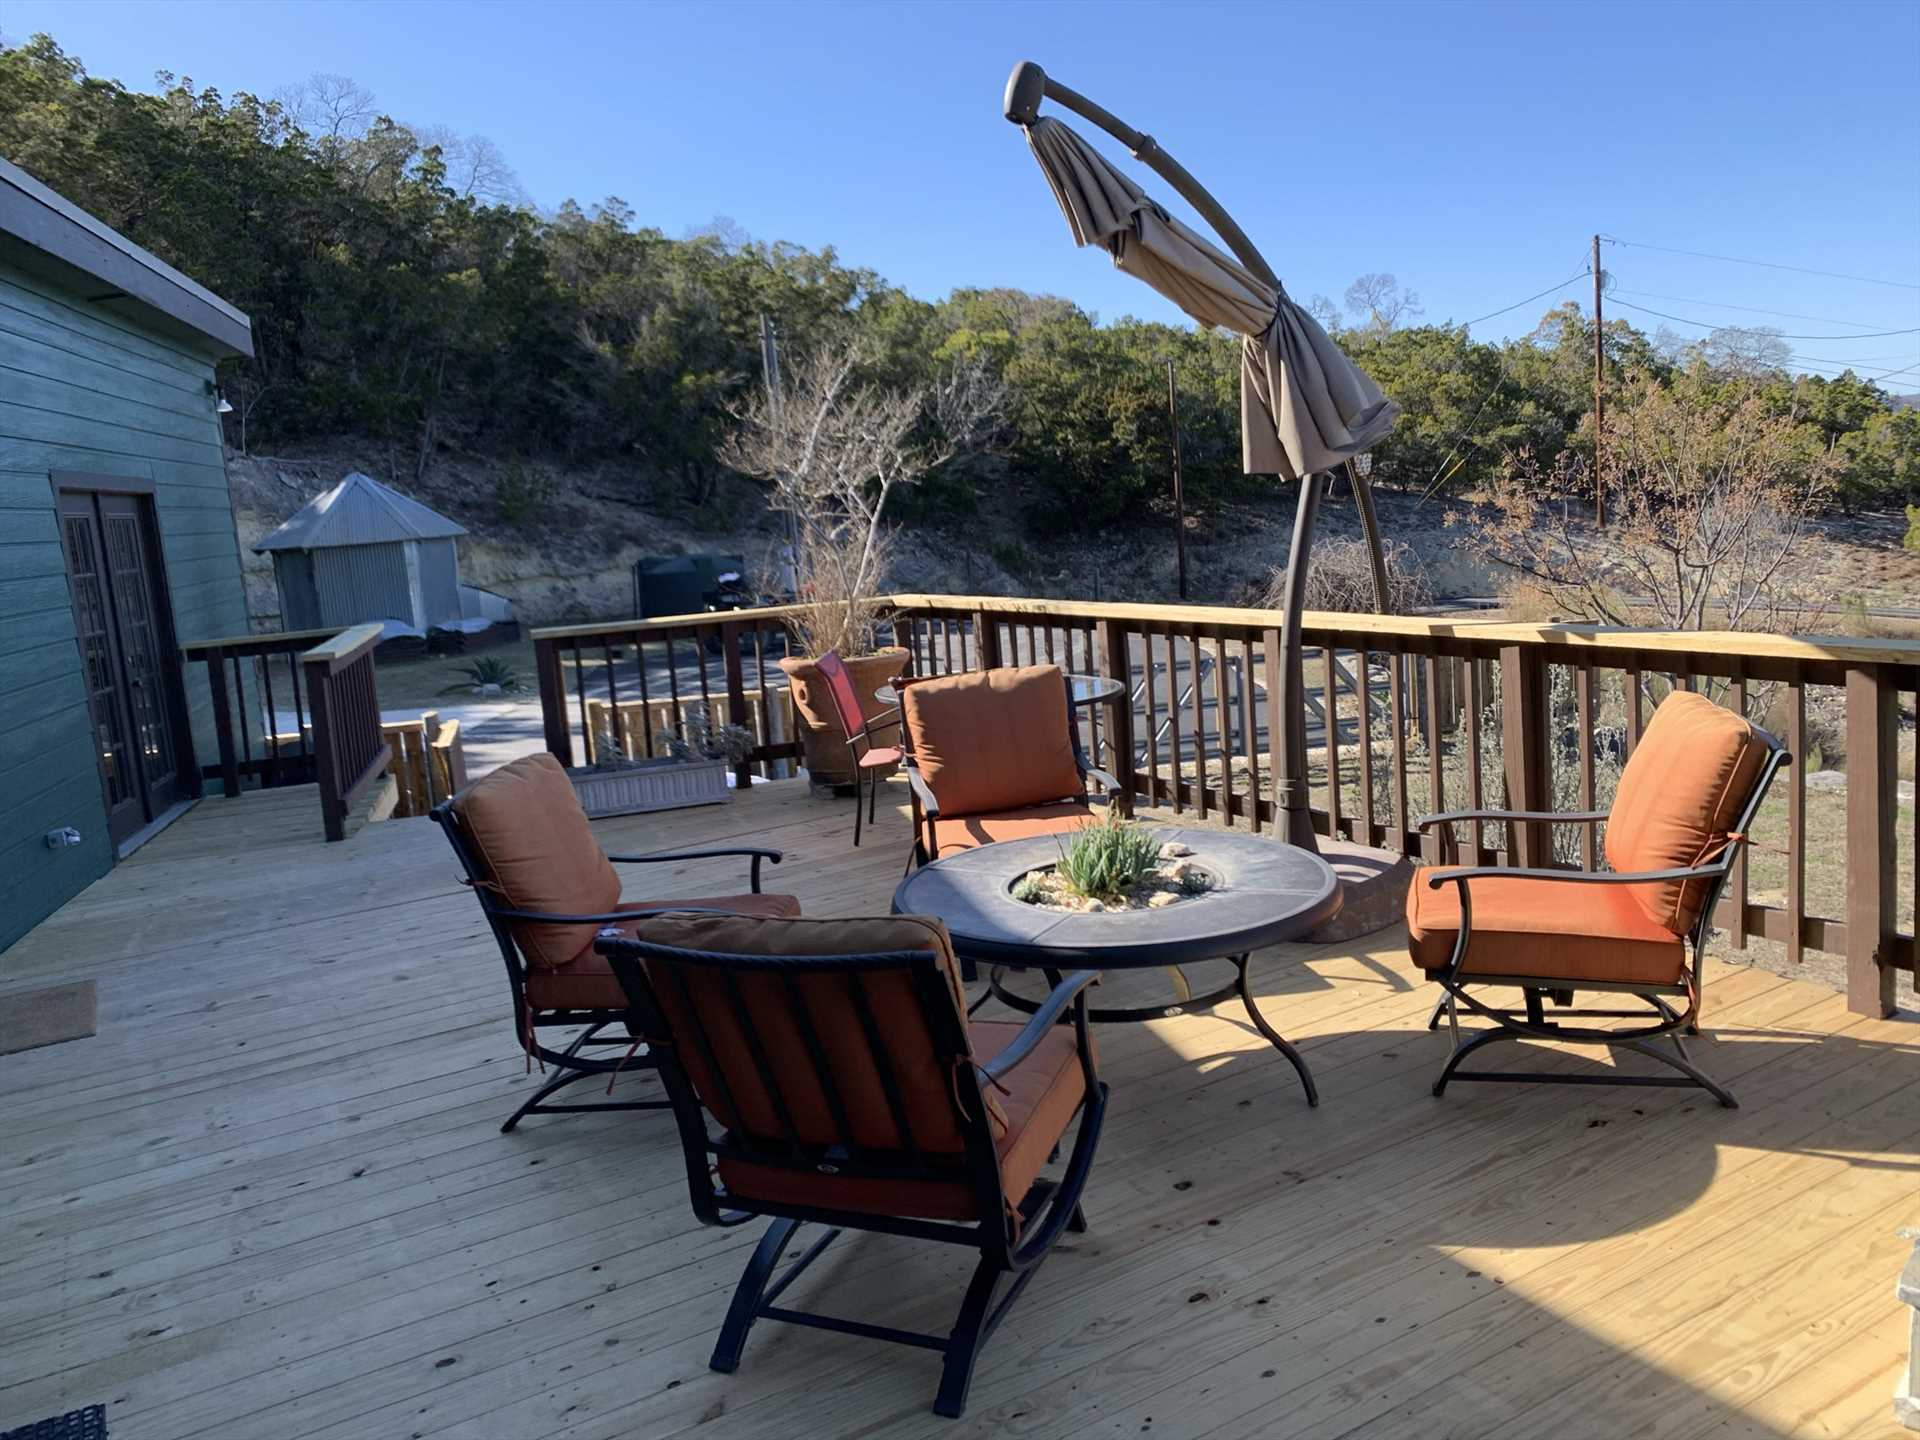 The deck features plenty of outdoor furniture, and a portable and adjustable source of shade.